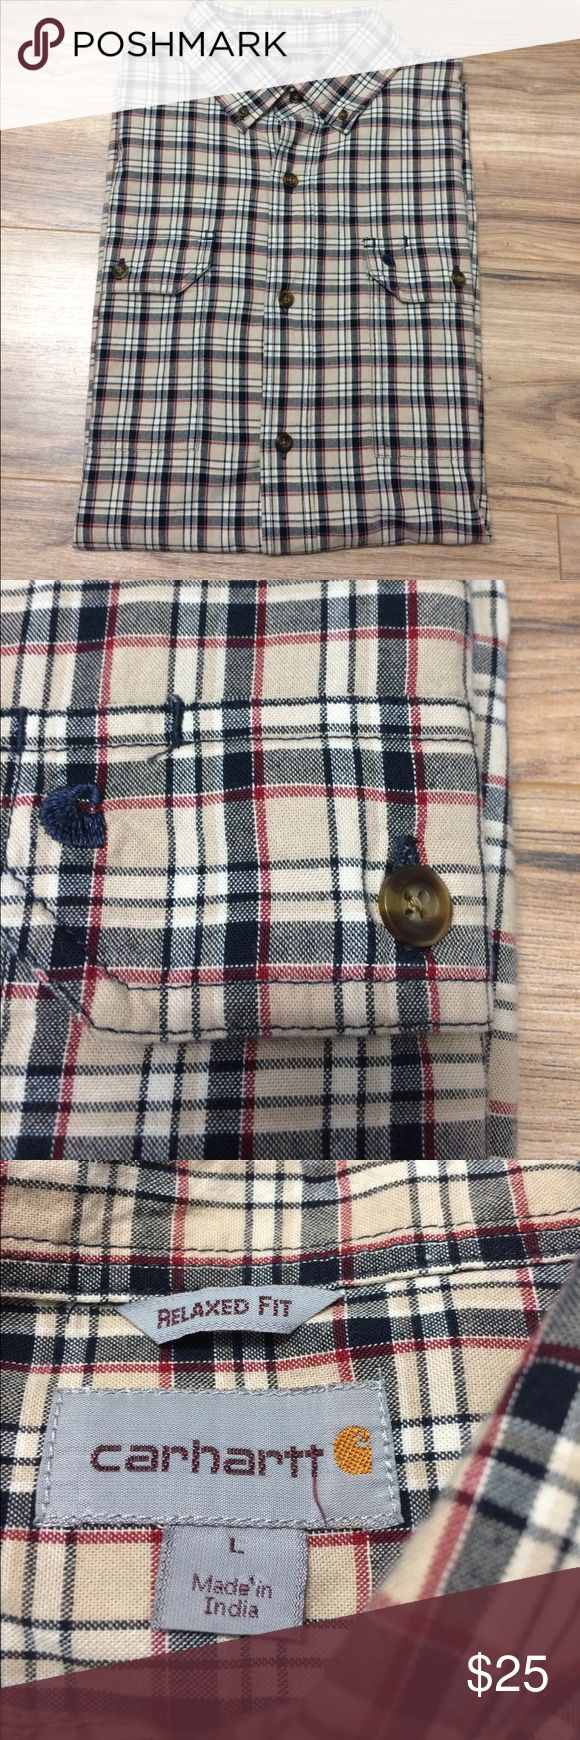 "Carhartt Button Down Plaid Shirt Large Short Slv Nice pre-owned condition! Double front pockets with button closure.  Relaxed fit. Pit to pit 24"". Length(mid shoulder to bottom hem) 32"". 100% Cotton Carhartt Shirts Casual Button Down Shirts"